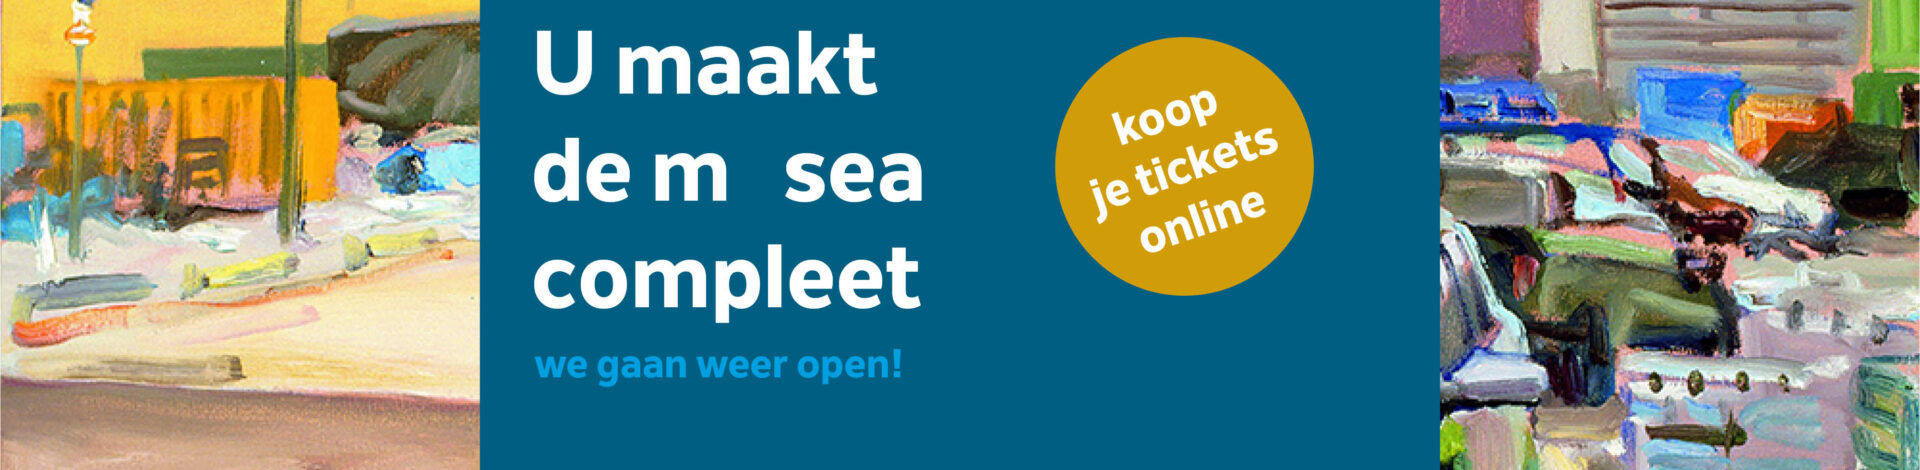 We gaan 1 juni open! Koop je tickets online